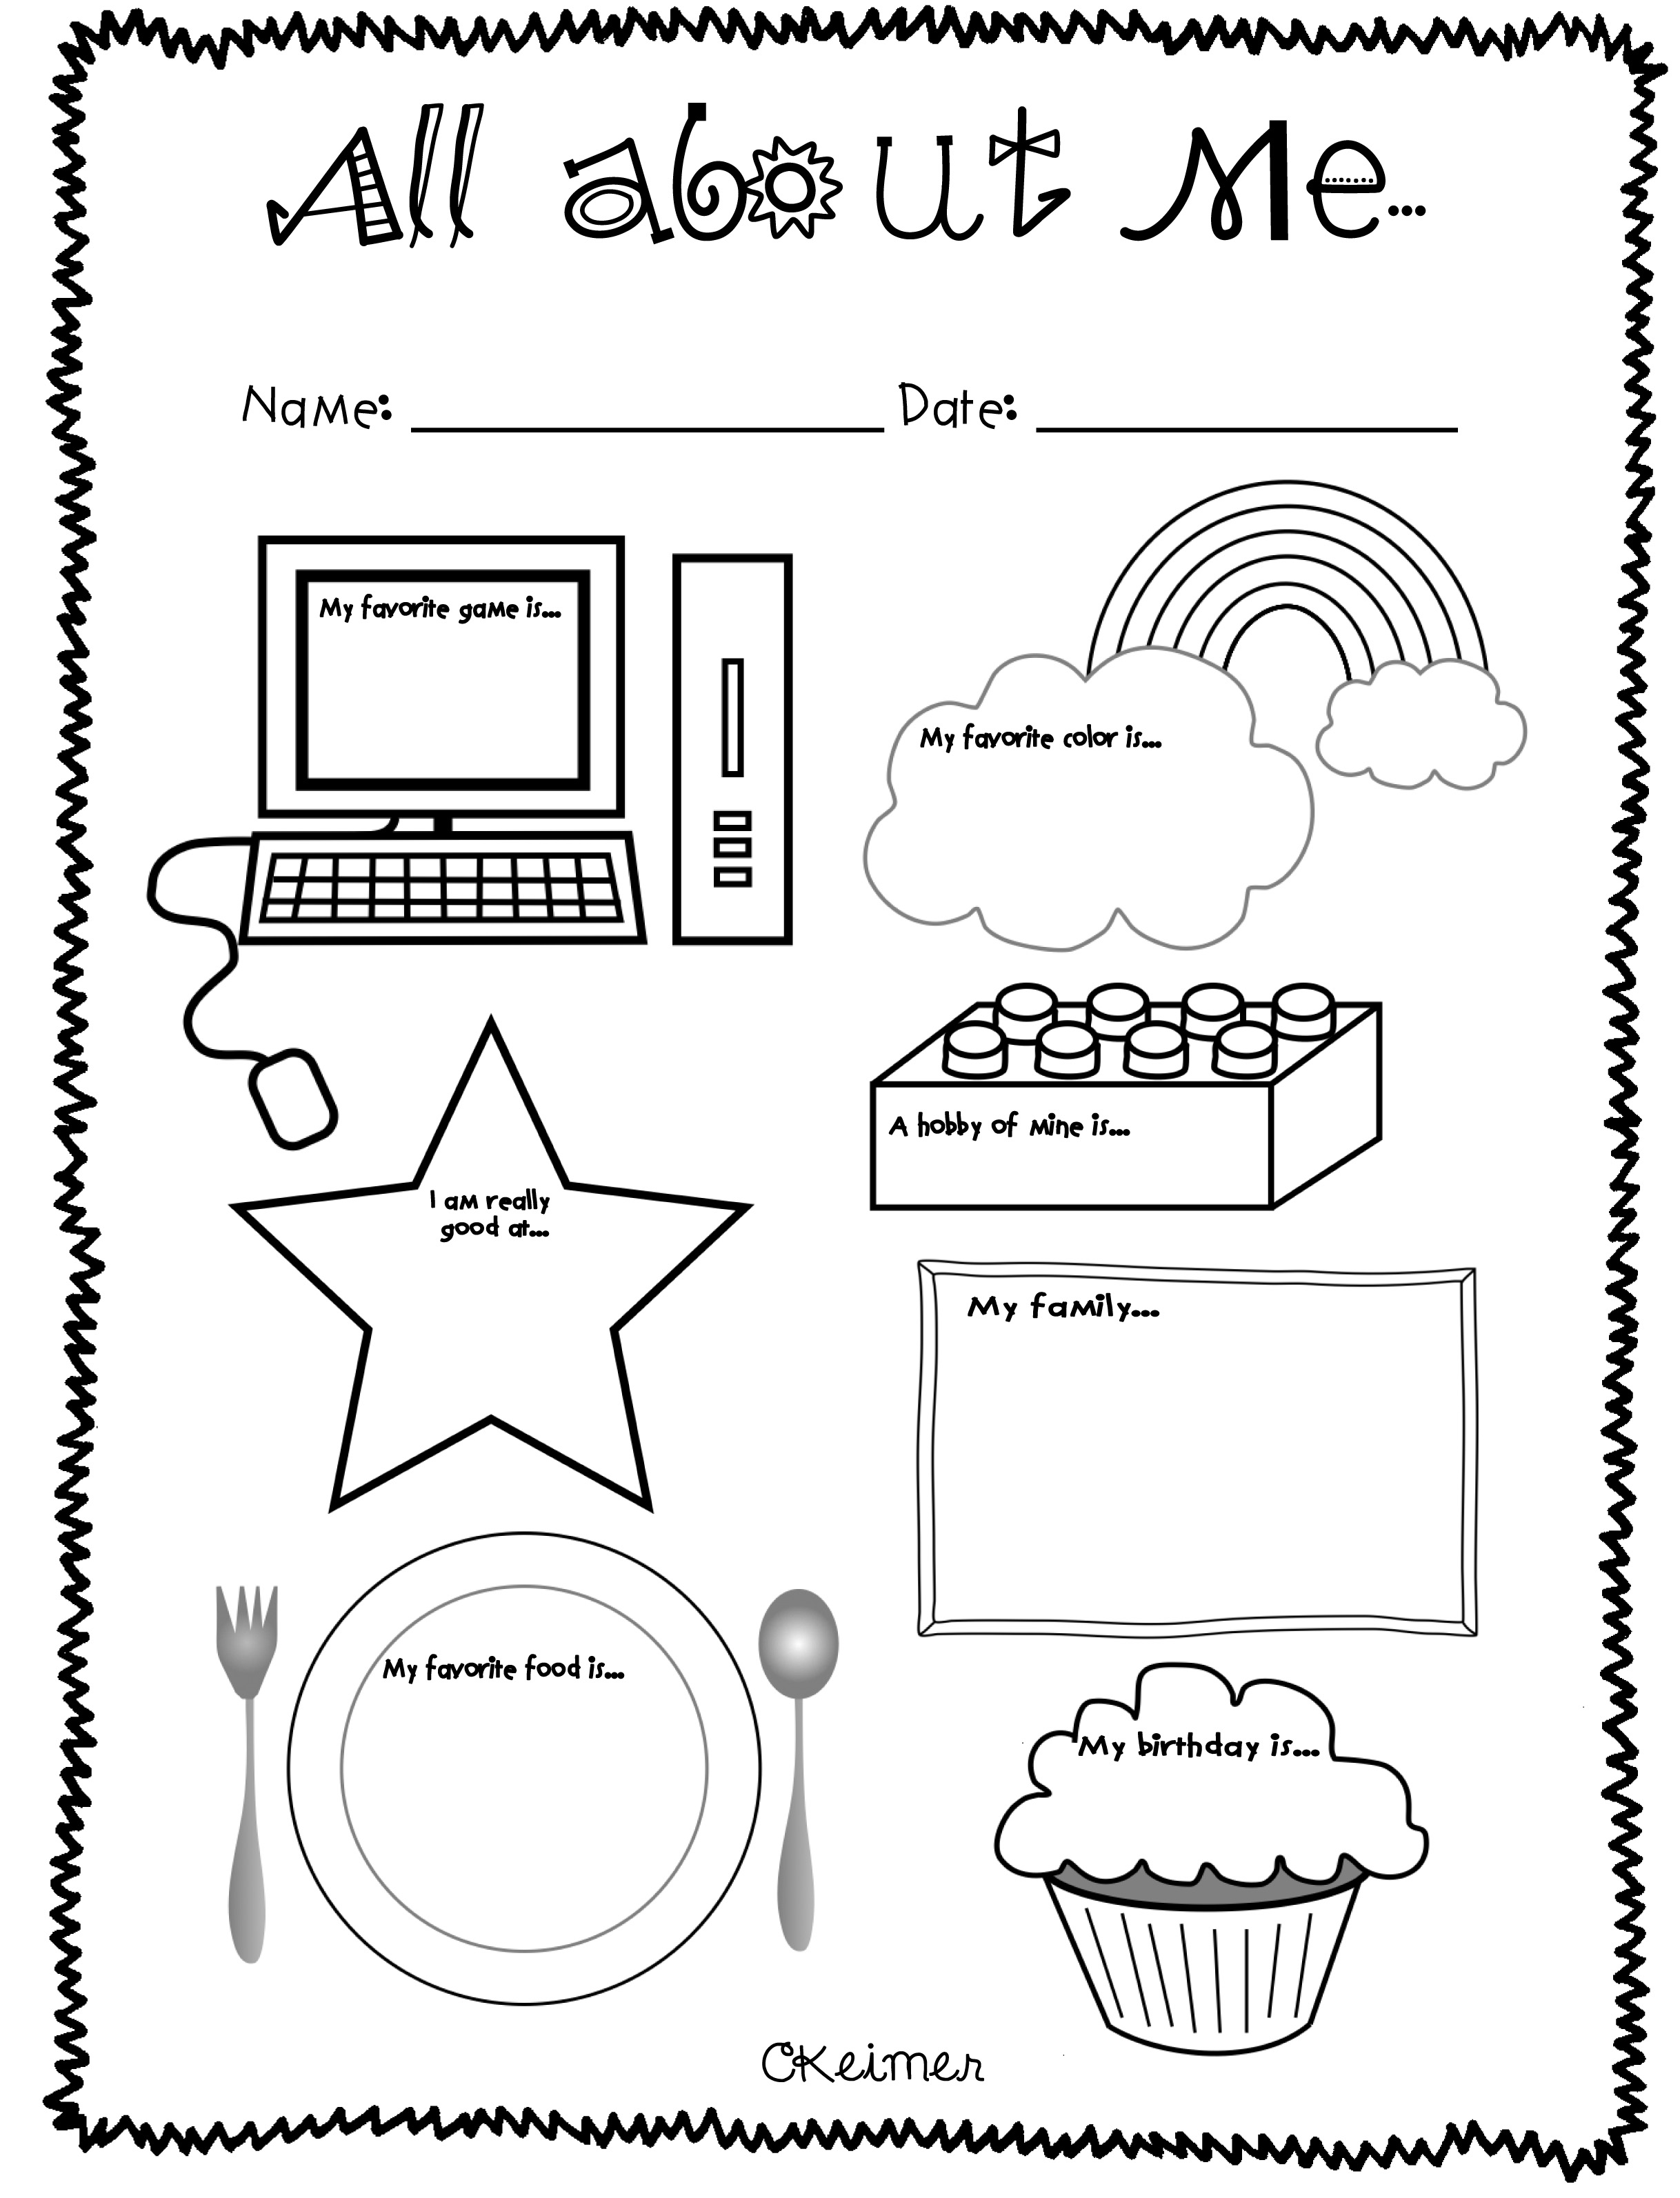 Preschool Printable Images Gallery Category Page 7